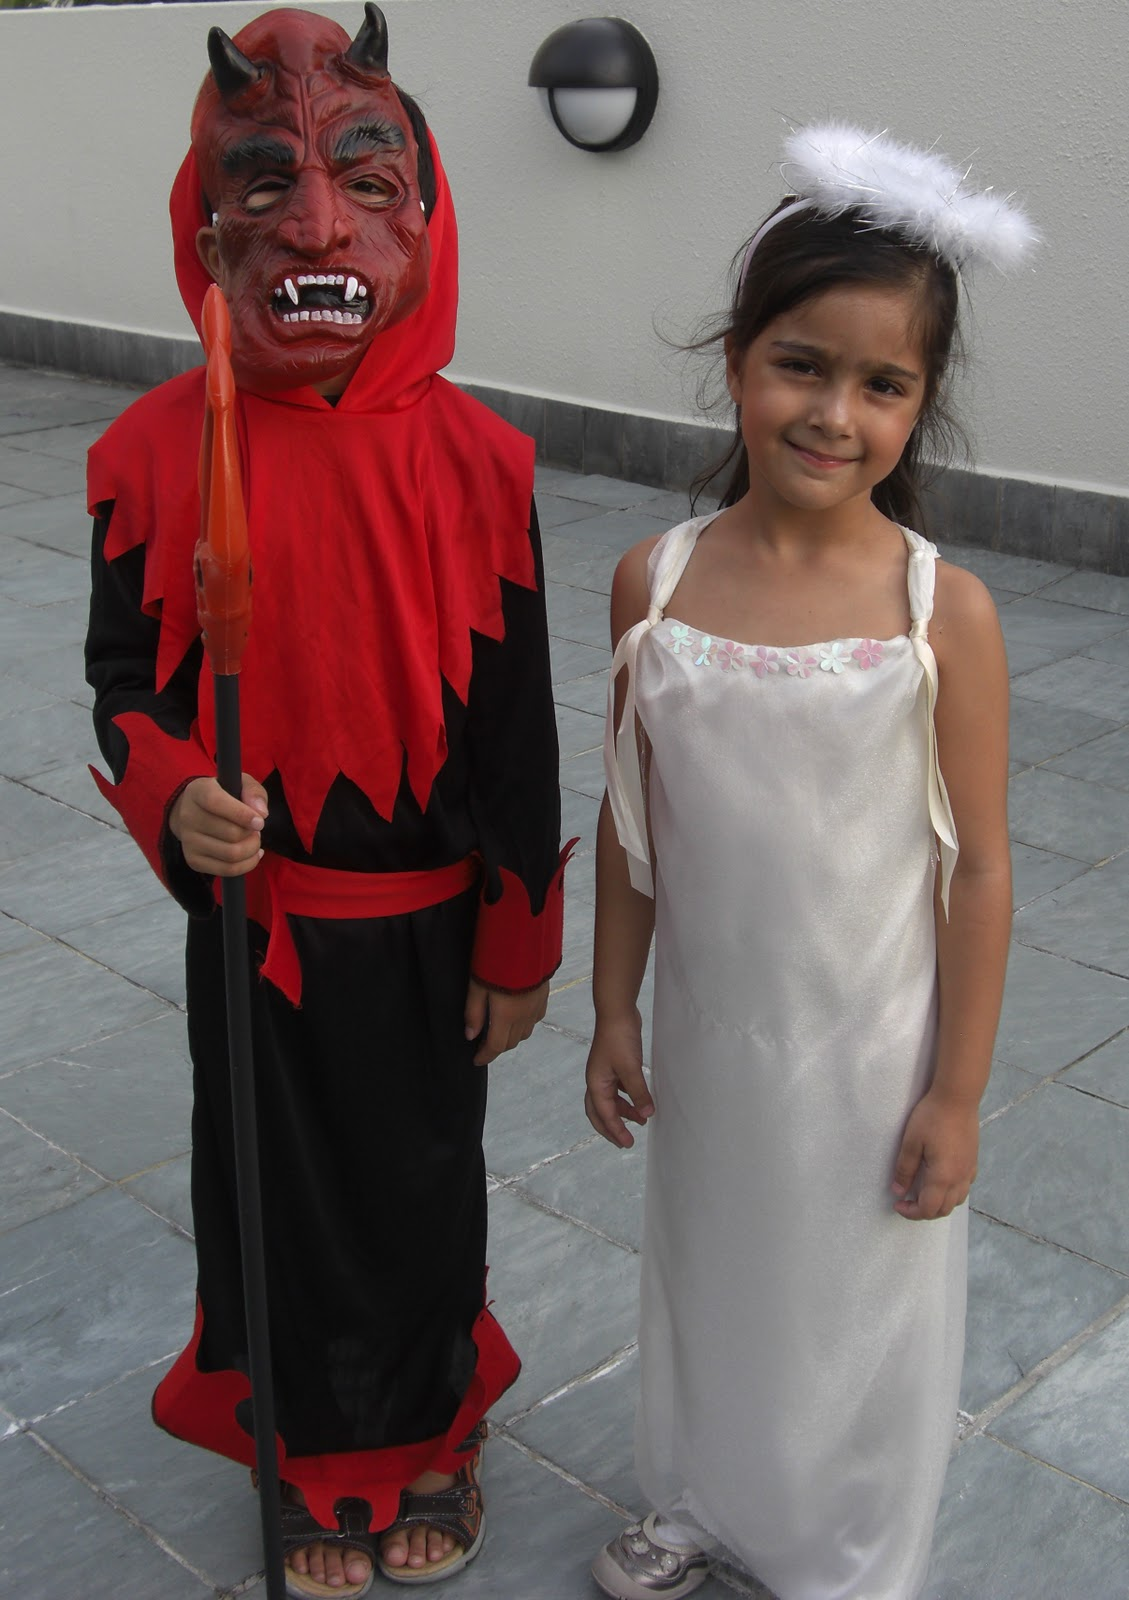 Halloween in Singapore: costumes and supplies